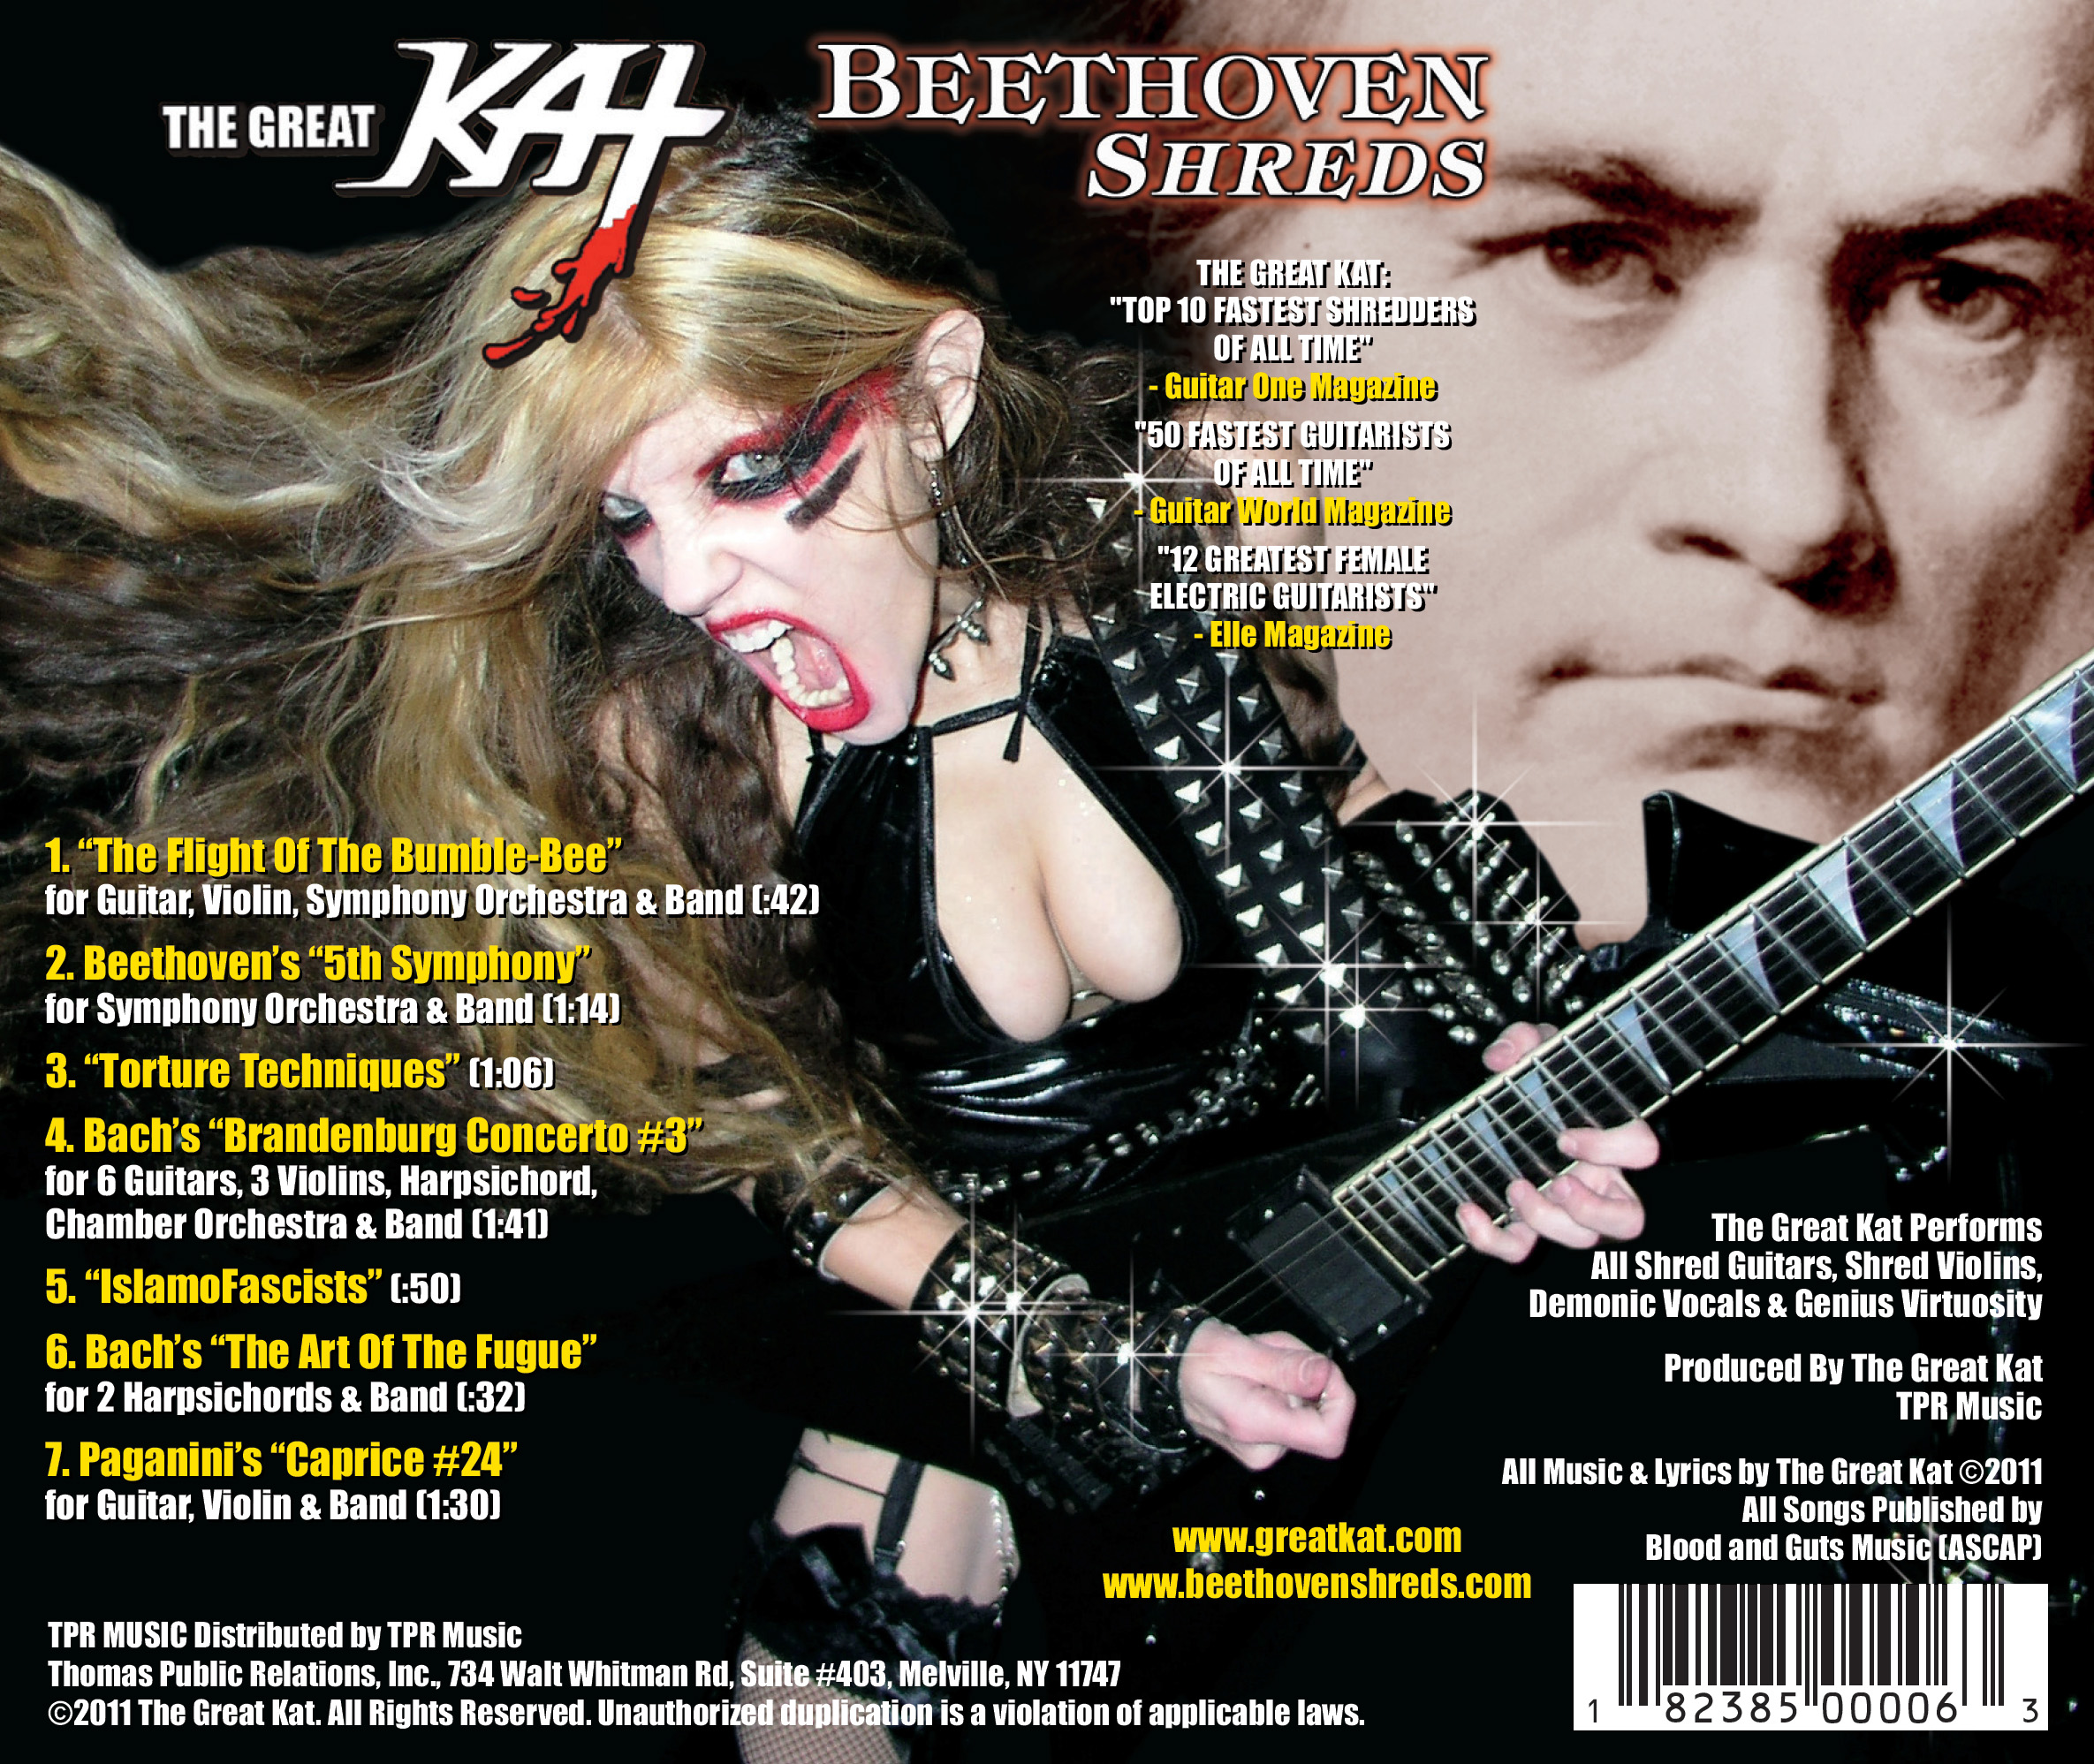 """The Great KAT """"BEETHOVEN SHREDS"""" CD Photos!"""